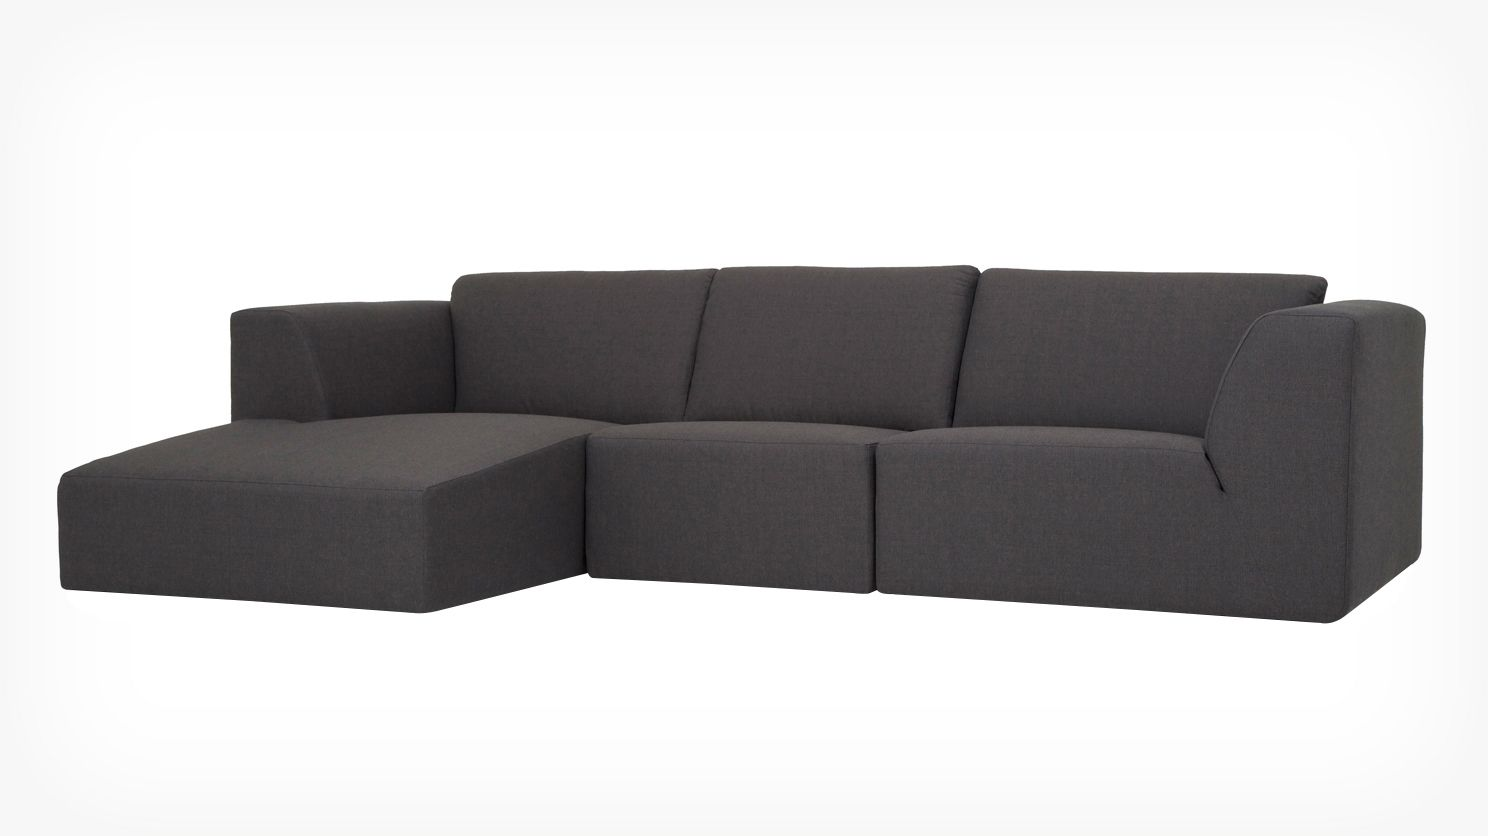 Morten 3 piece sectional sofa with chaise fabric eq3 for Sectional sofa eq3